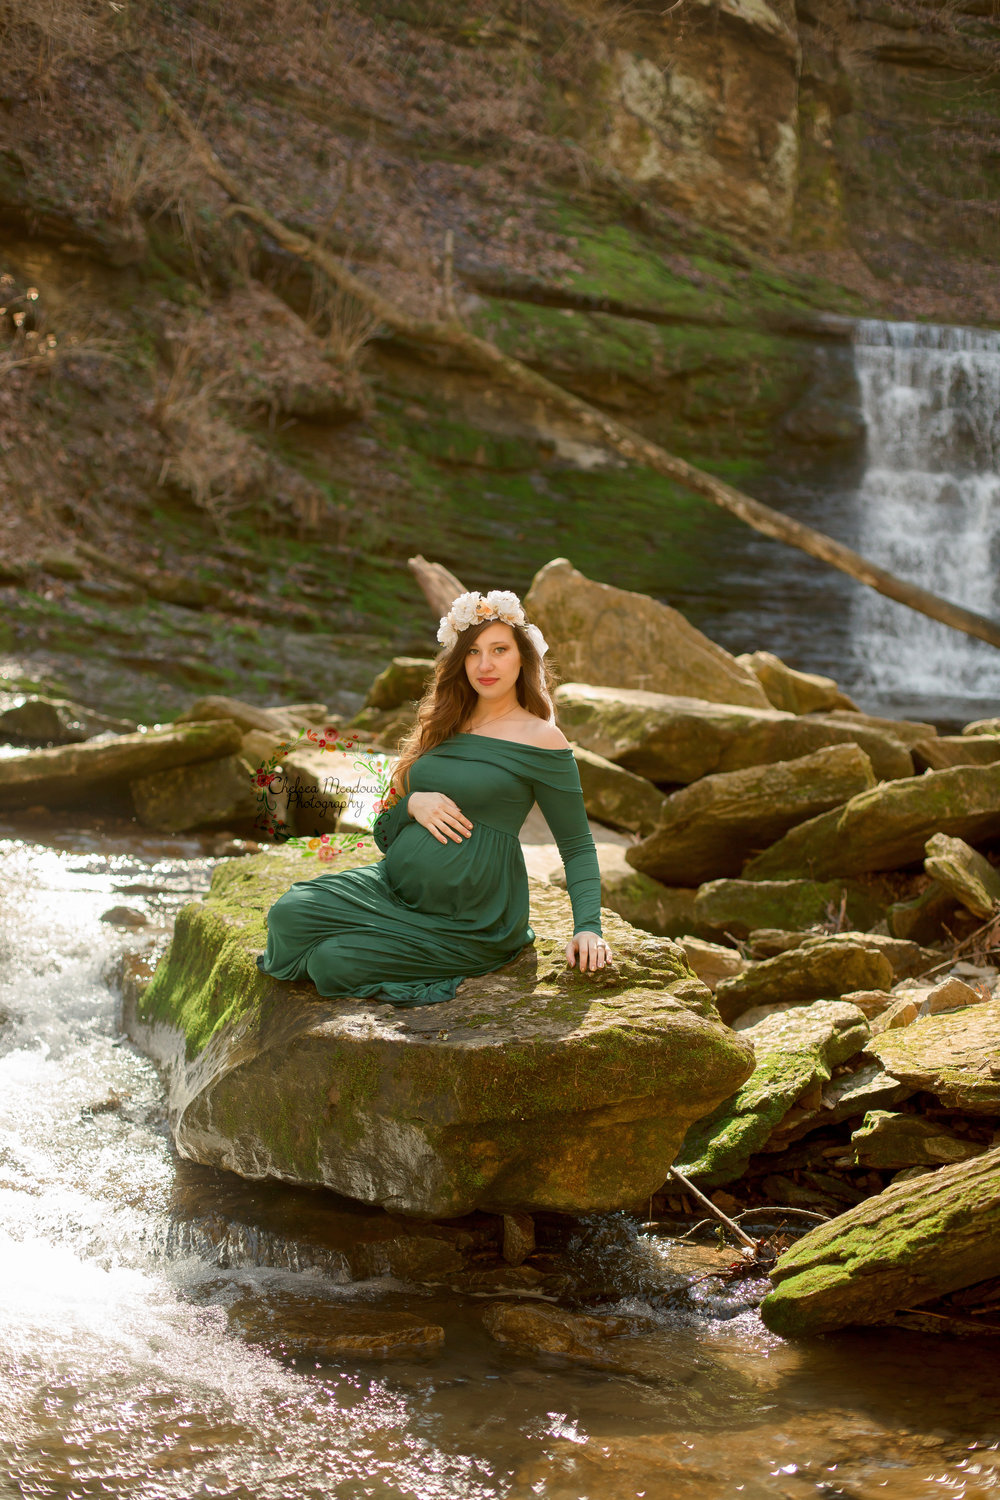 Brittany Maternity Photos - Nashville Maternity Photography - Chelsea Meadows Photography (9).jpg